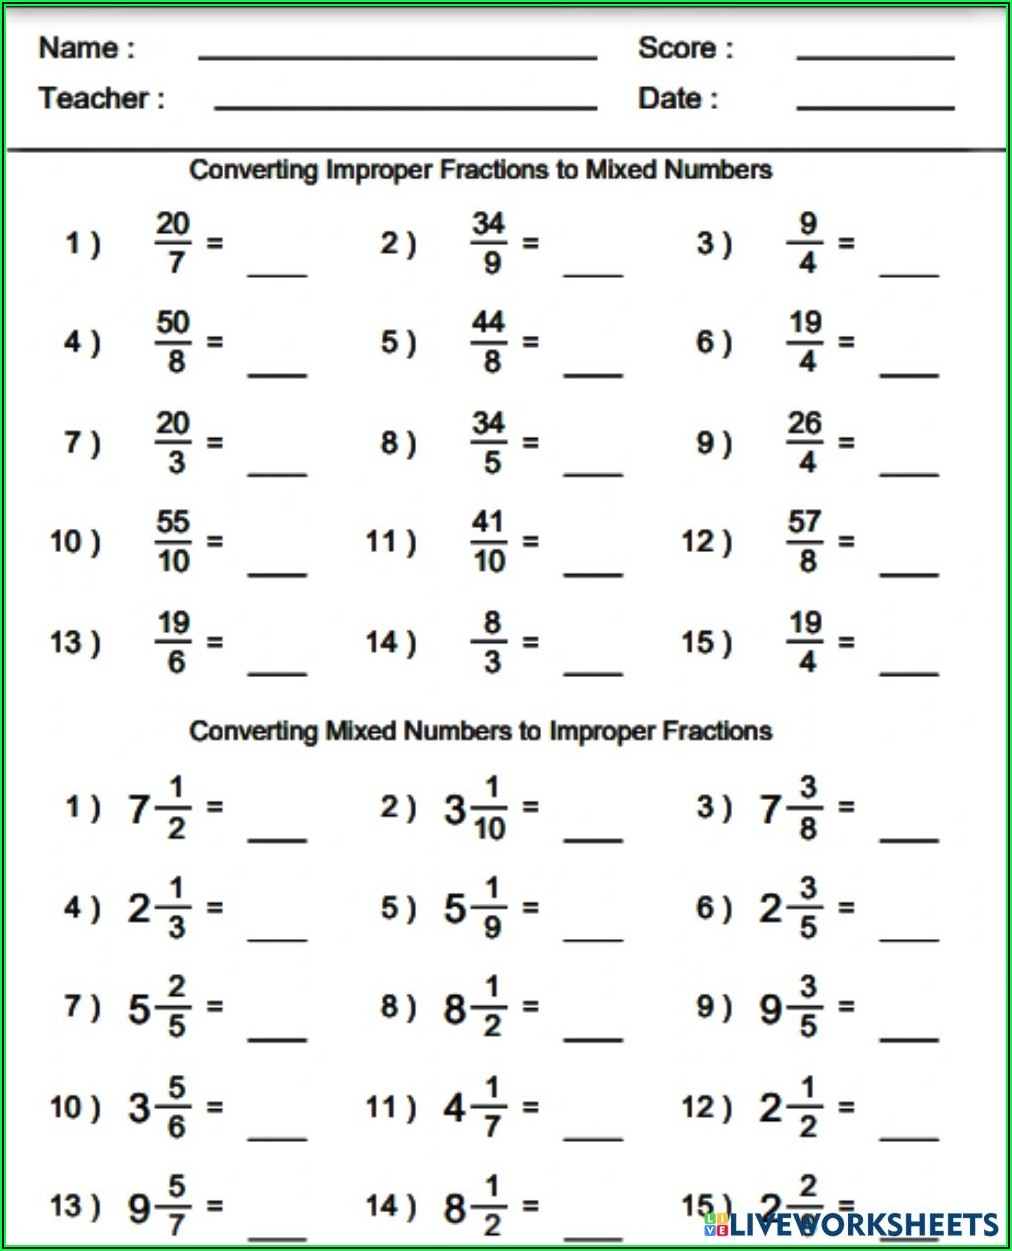 Turning Improper Fractions To Mixed Numbers Worksheet